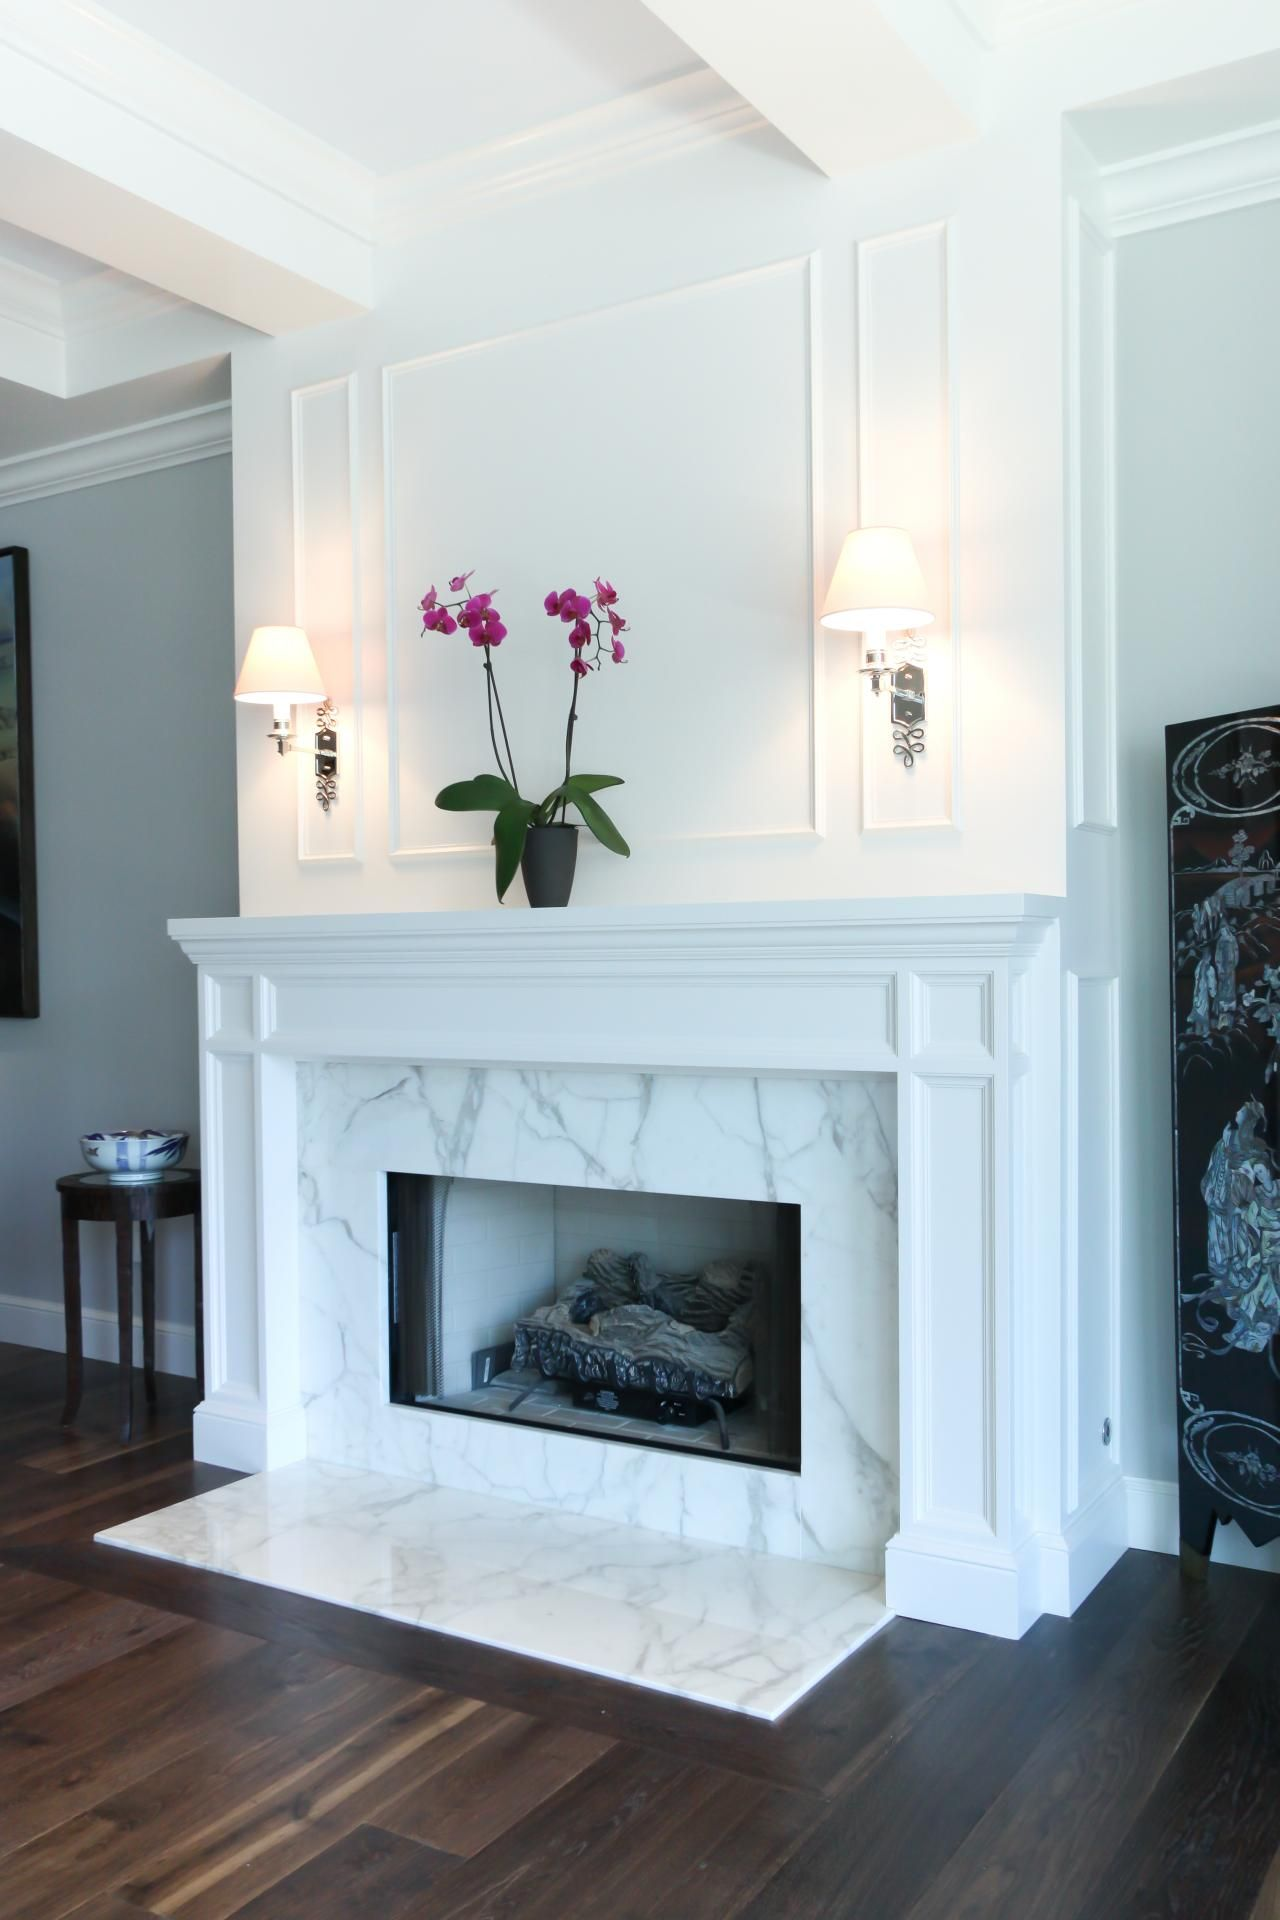 Striking Marble Fireplace In Transitional Living Room Home Fireplace Transitional Living Rooms Living Room With Fireplace